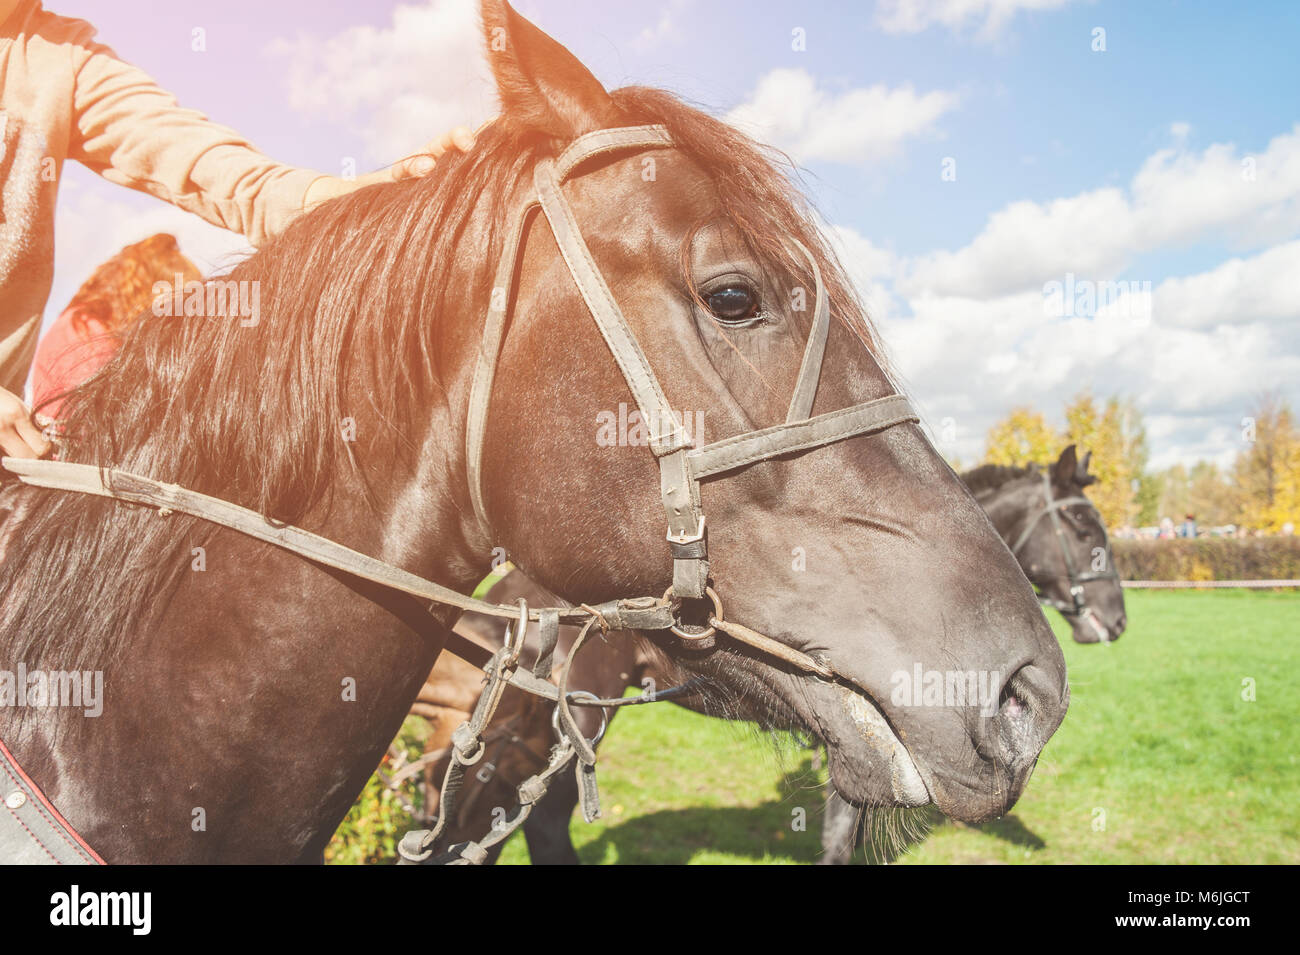 Head of Bay horse closeup in Sunny autumn day. Copy space. - Stock Image